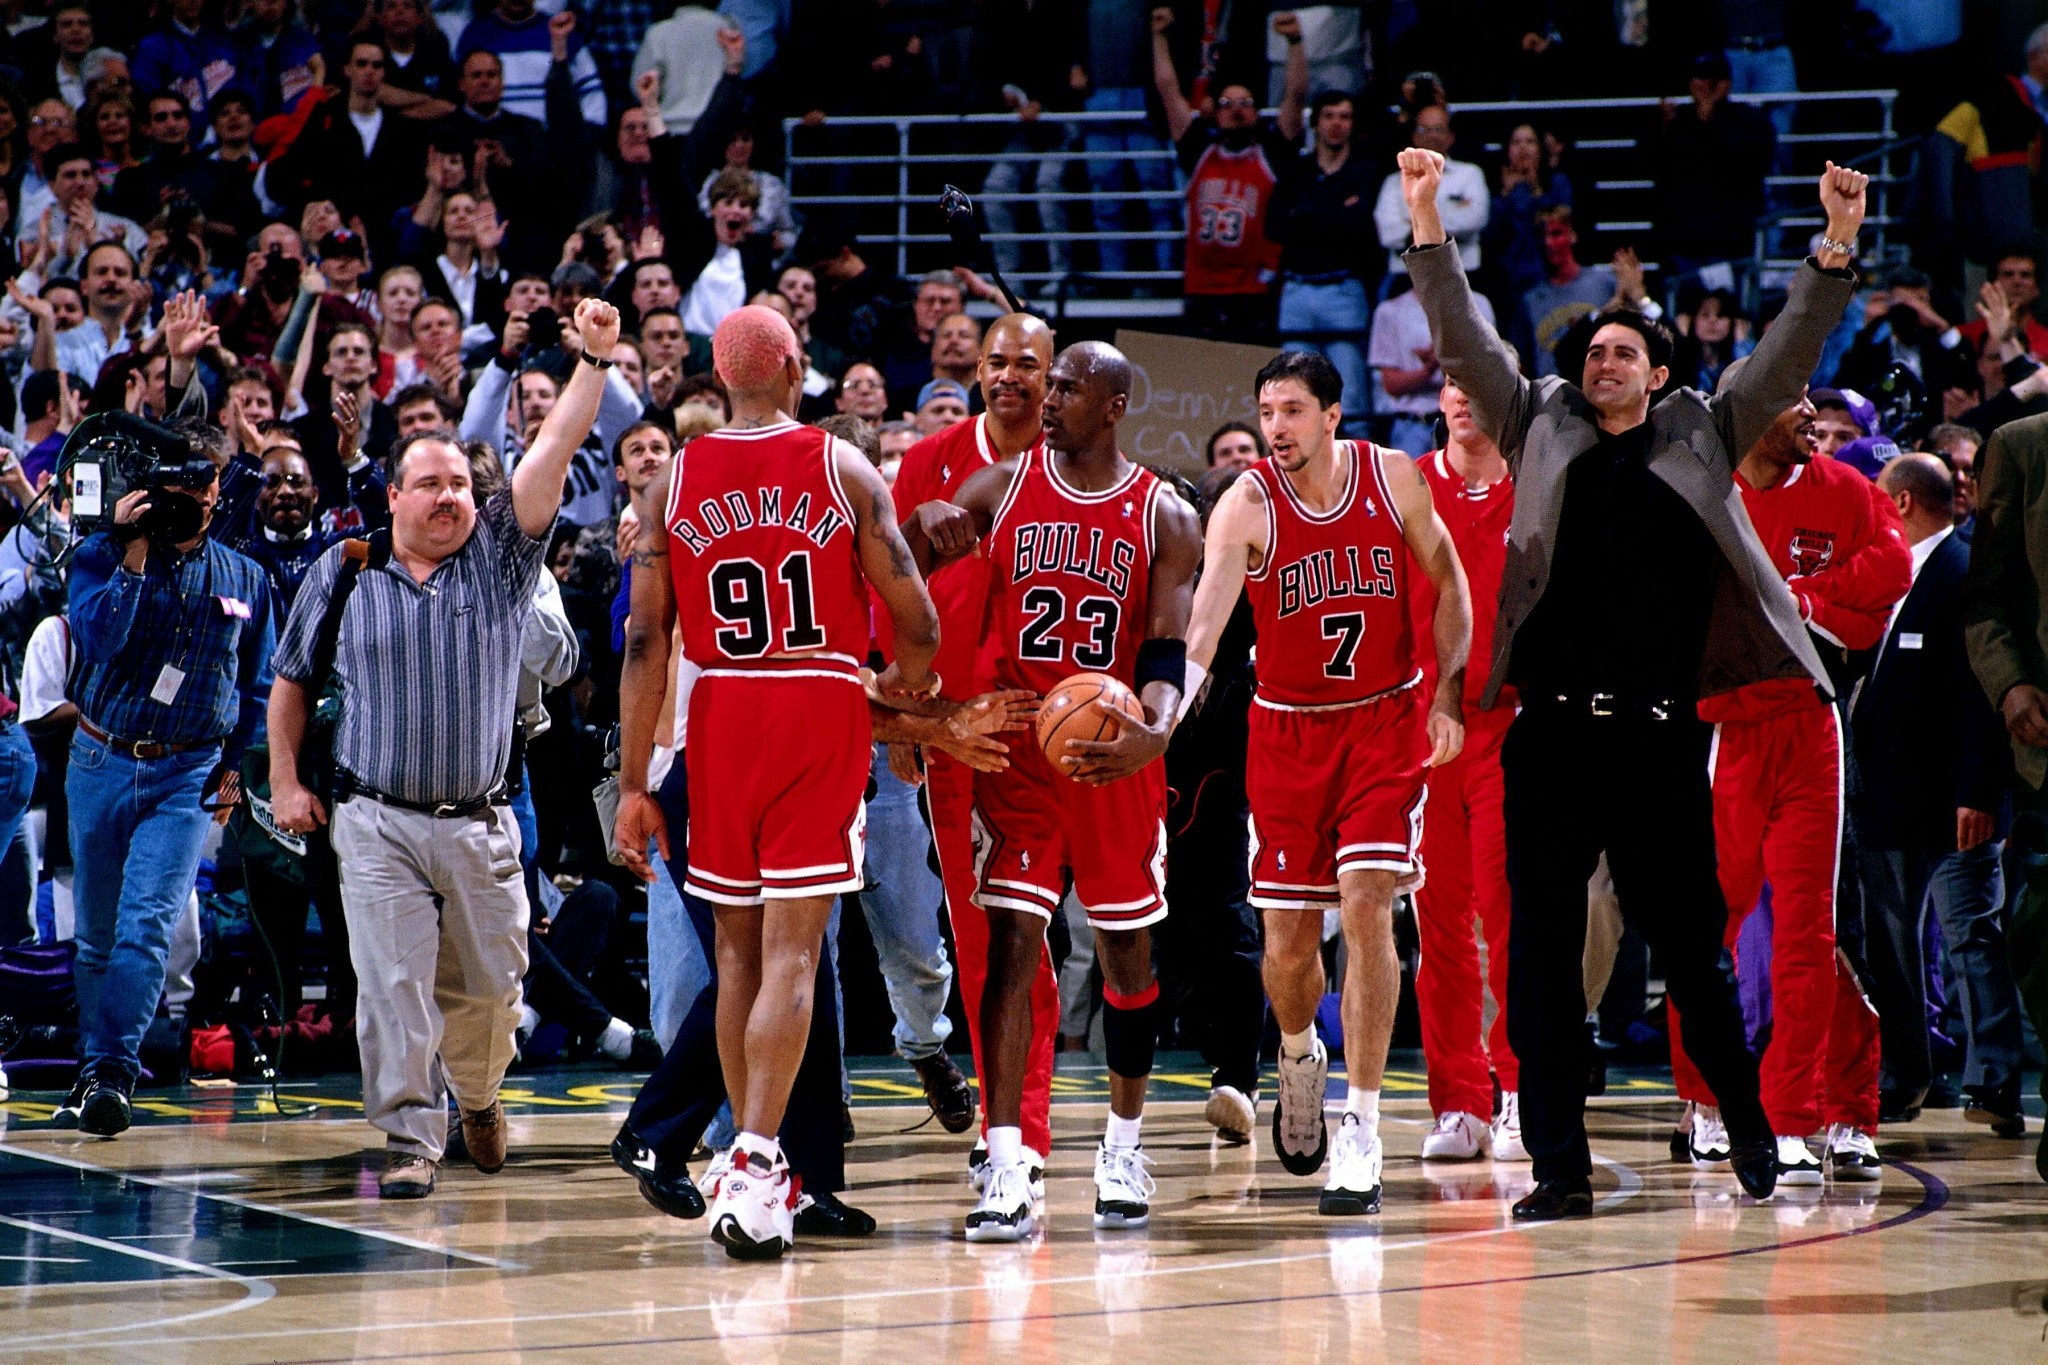 size 40 0e8bf 46186 1996 Team - 70 Wins v MLW 04-16-96 (NBAE Andrew Bernstein. The Bulls went  out on ...